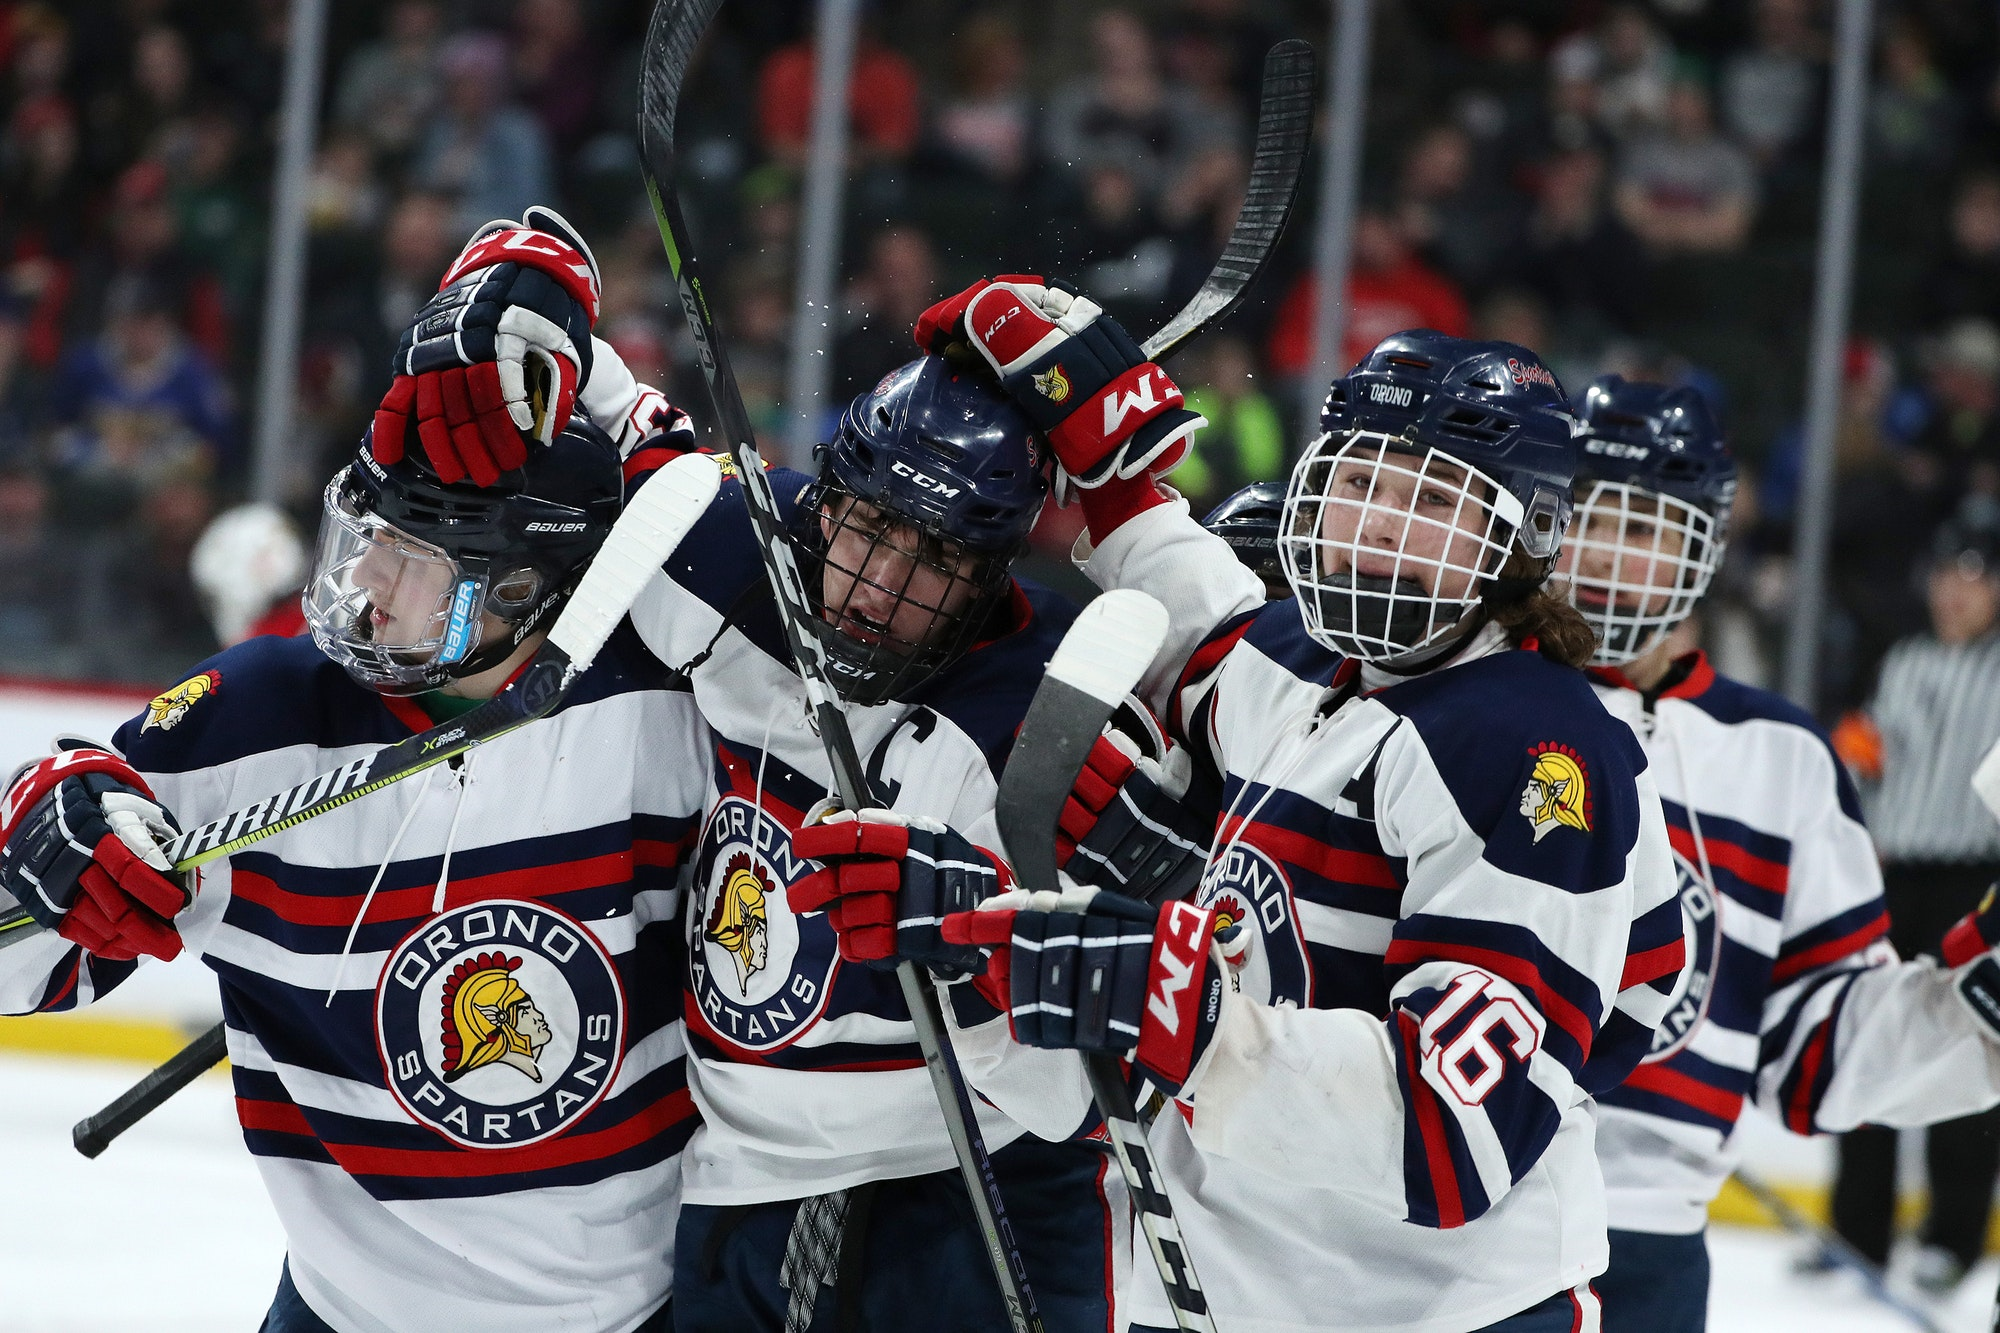 Orono forward Thomas Walker (23) celebrated with his teammates after scoring in the first period. Star Tribune photo by Anthony Souffle